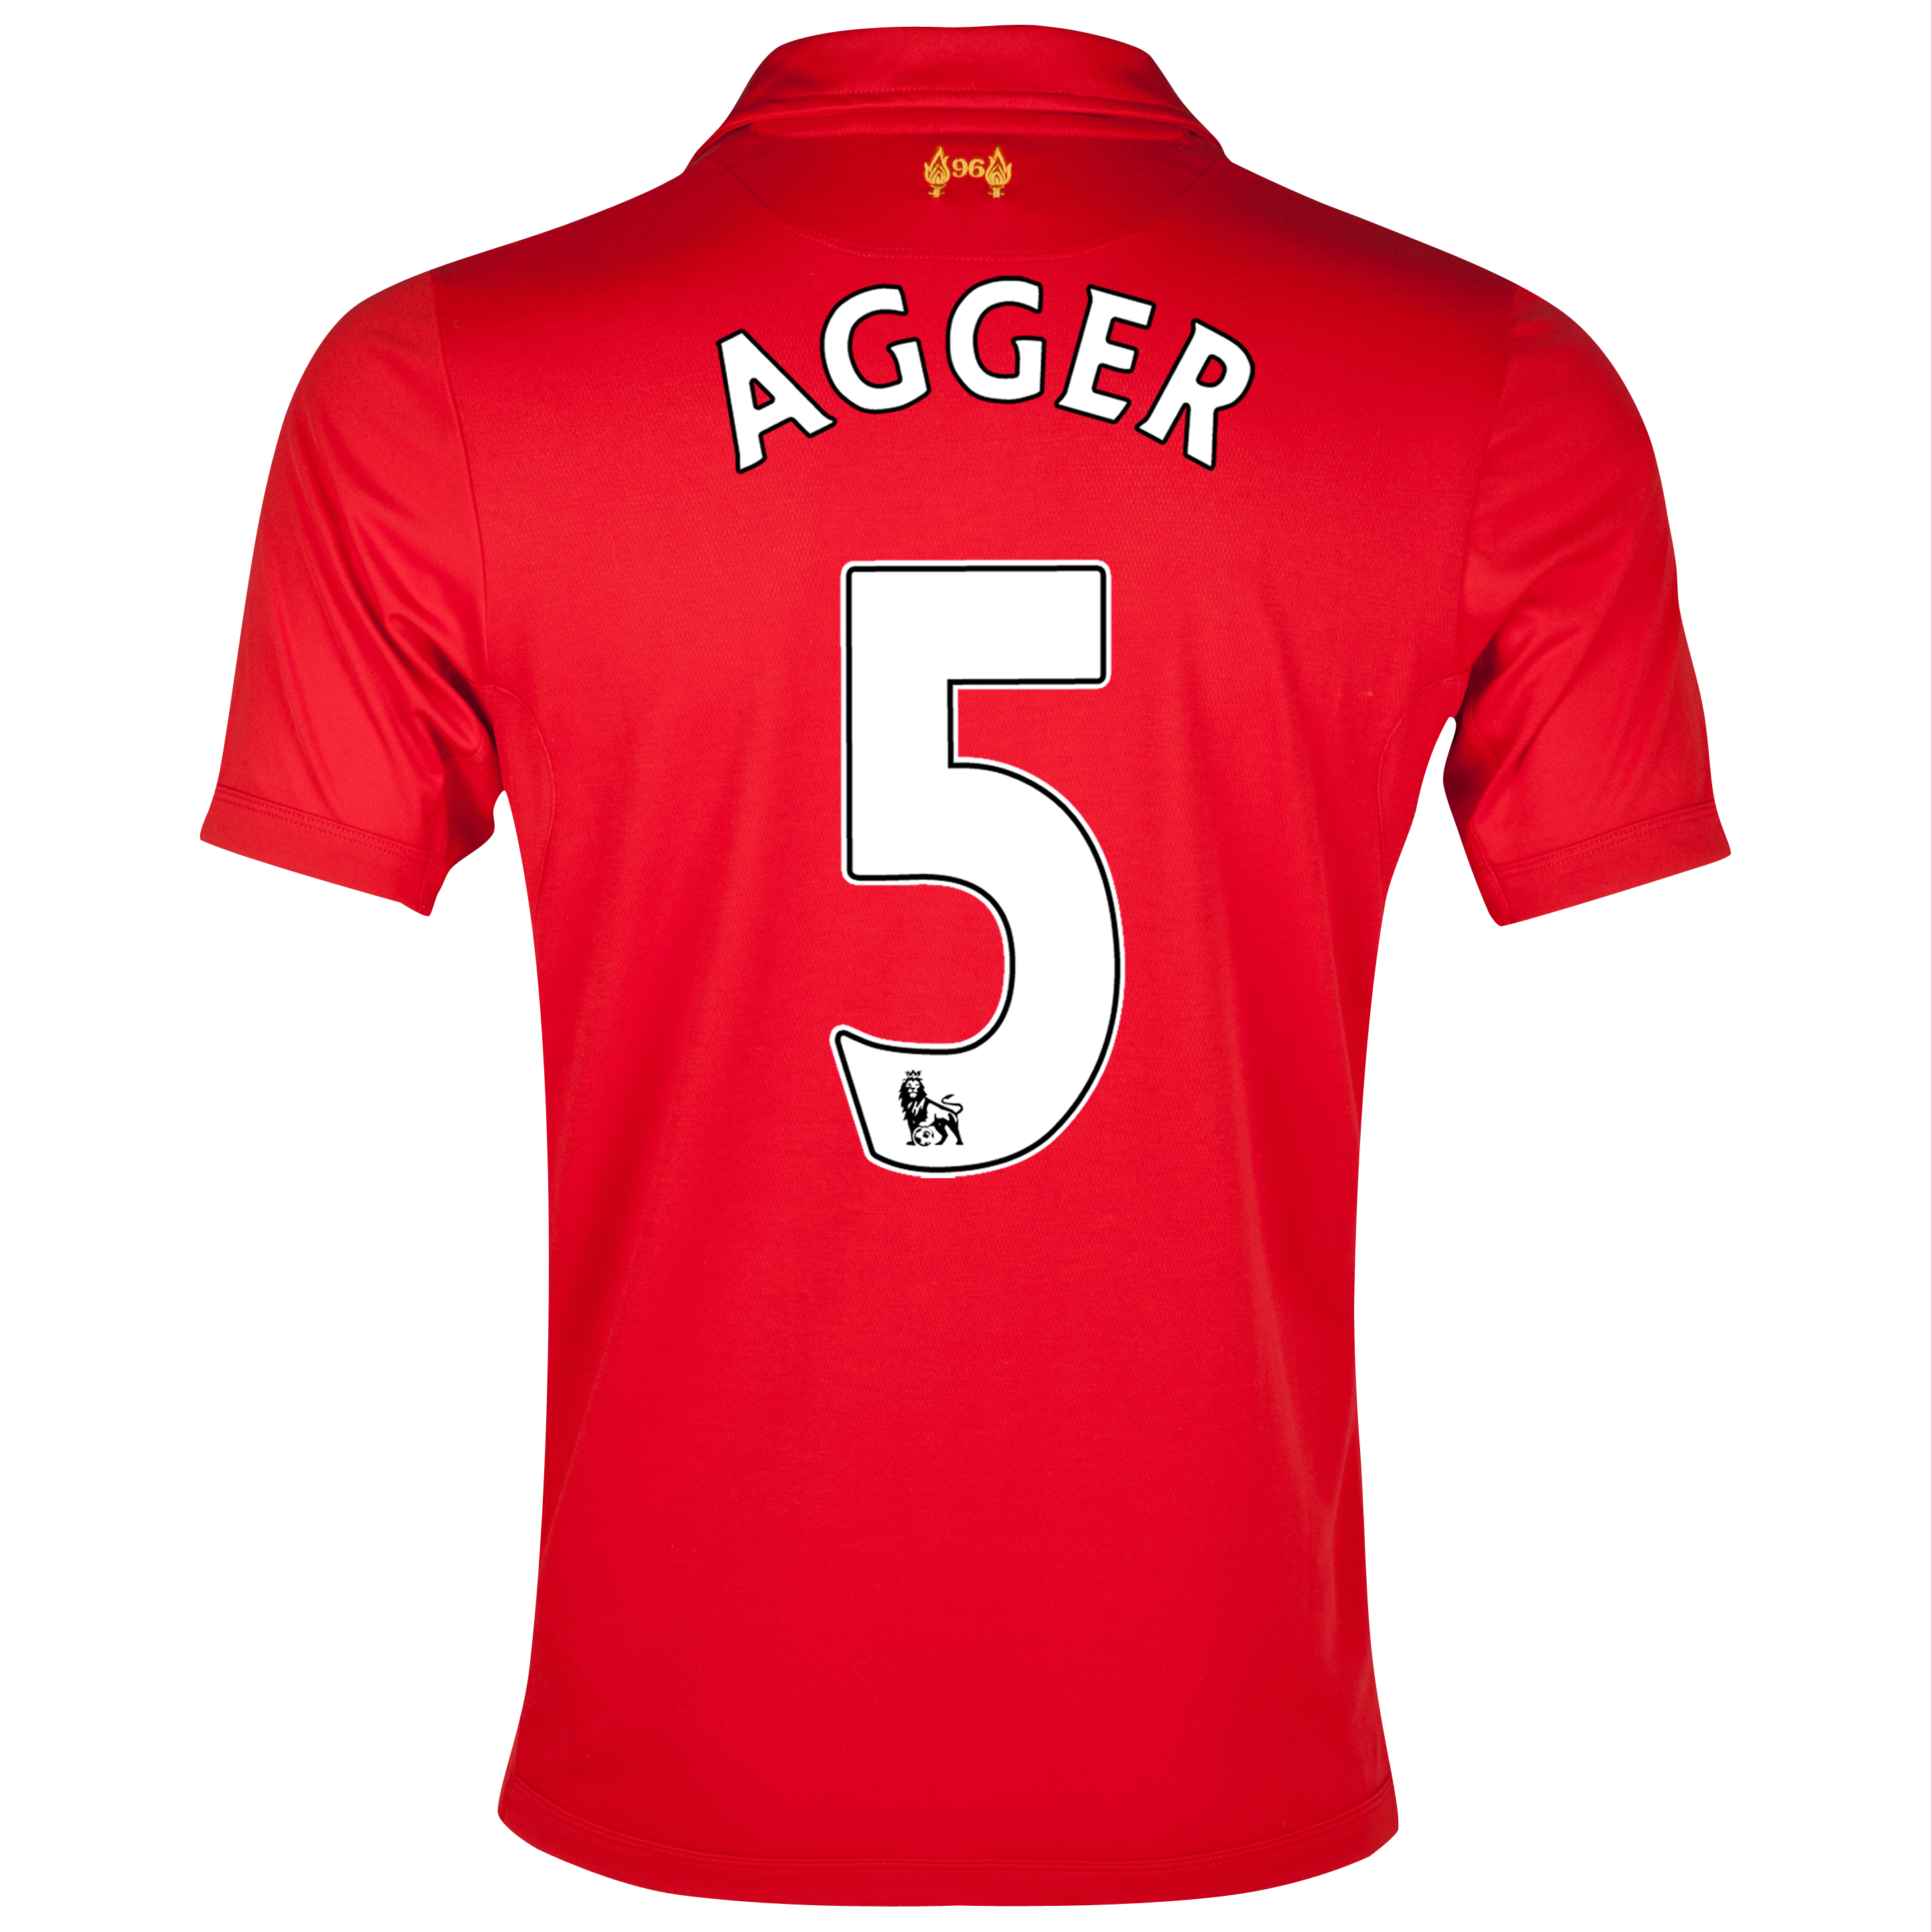 Liverpool Home Shirt 2012/13 - Youths with Agger 5 printing